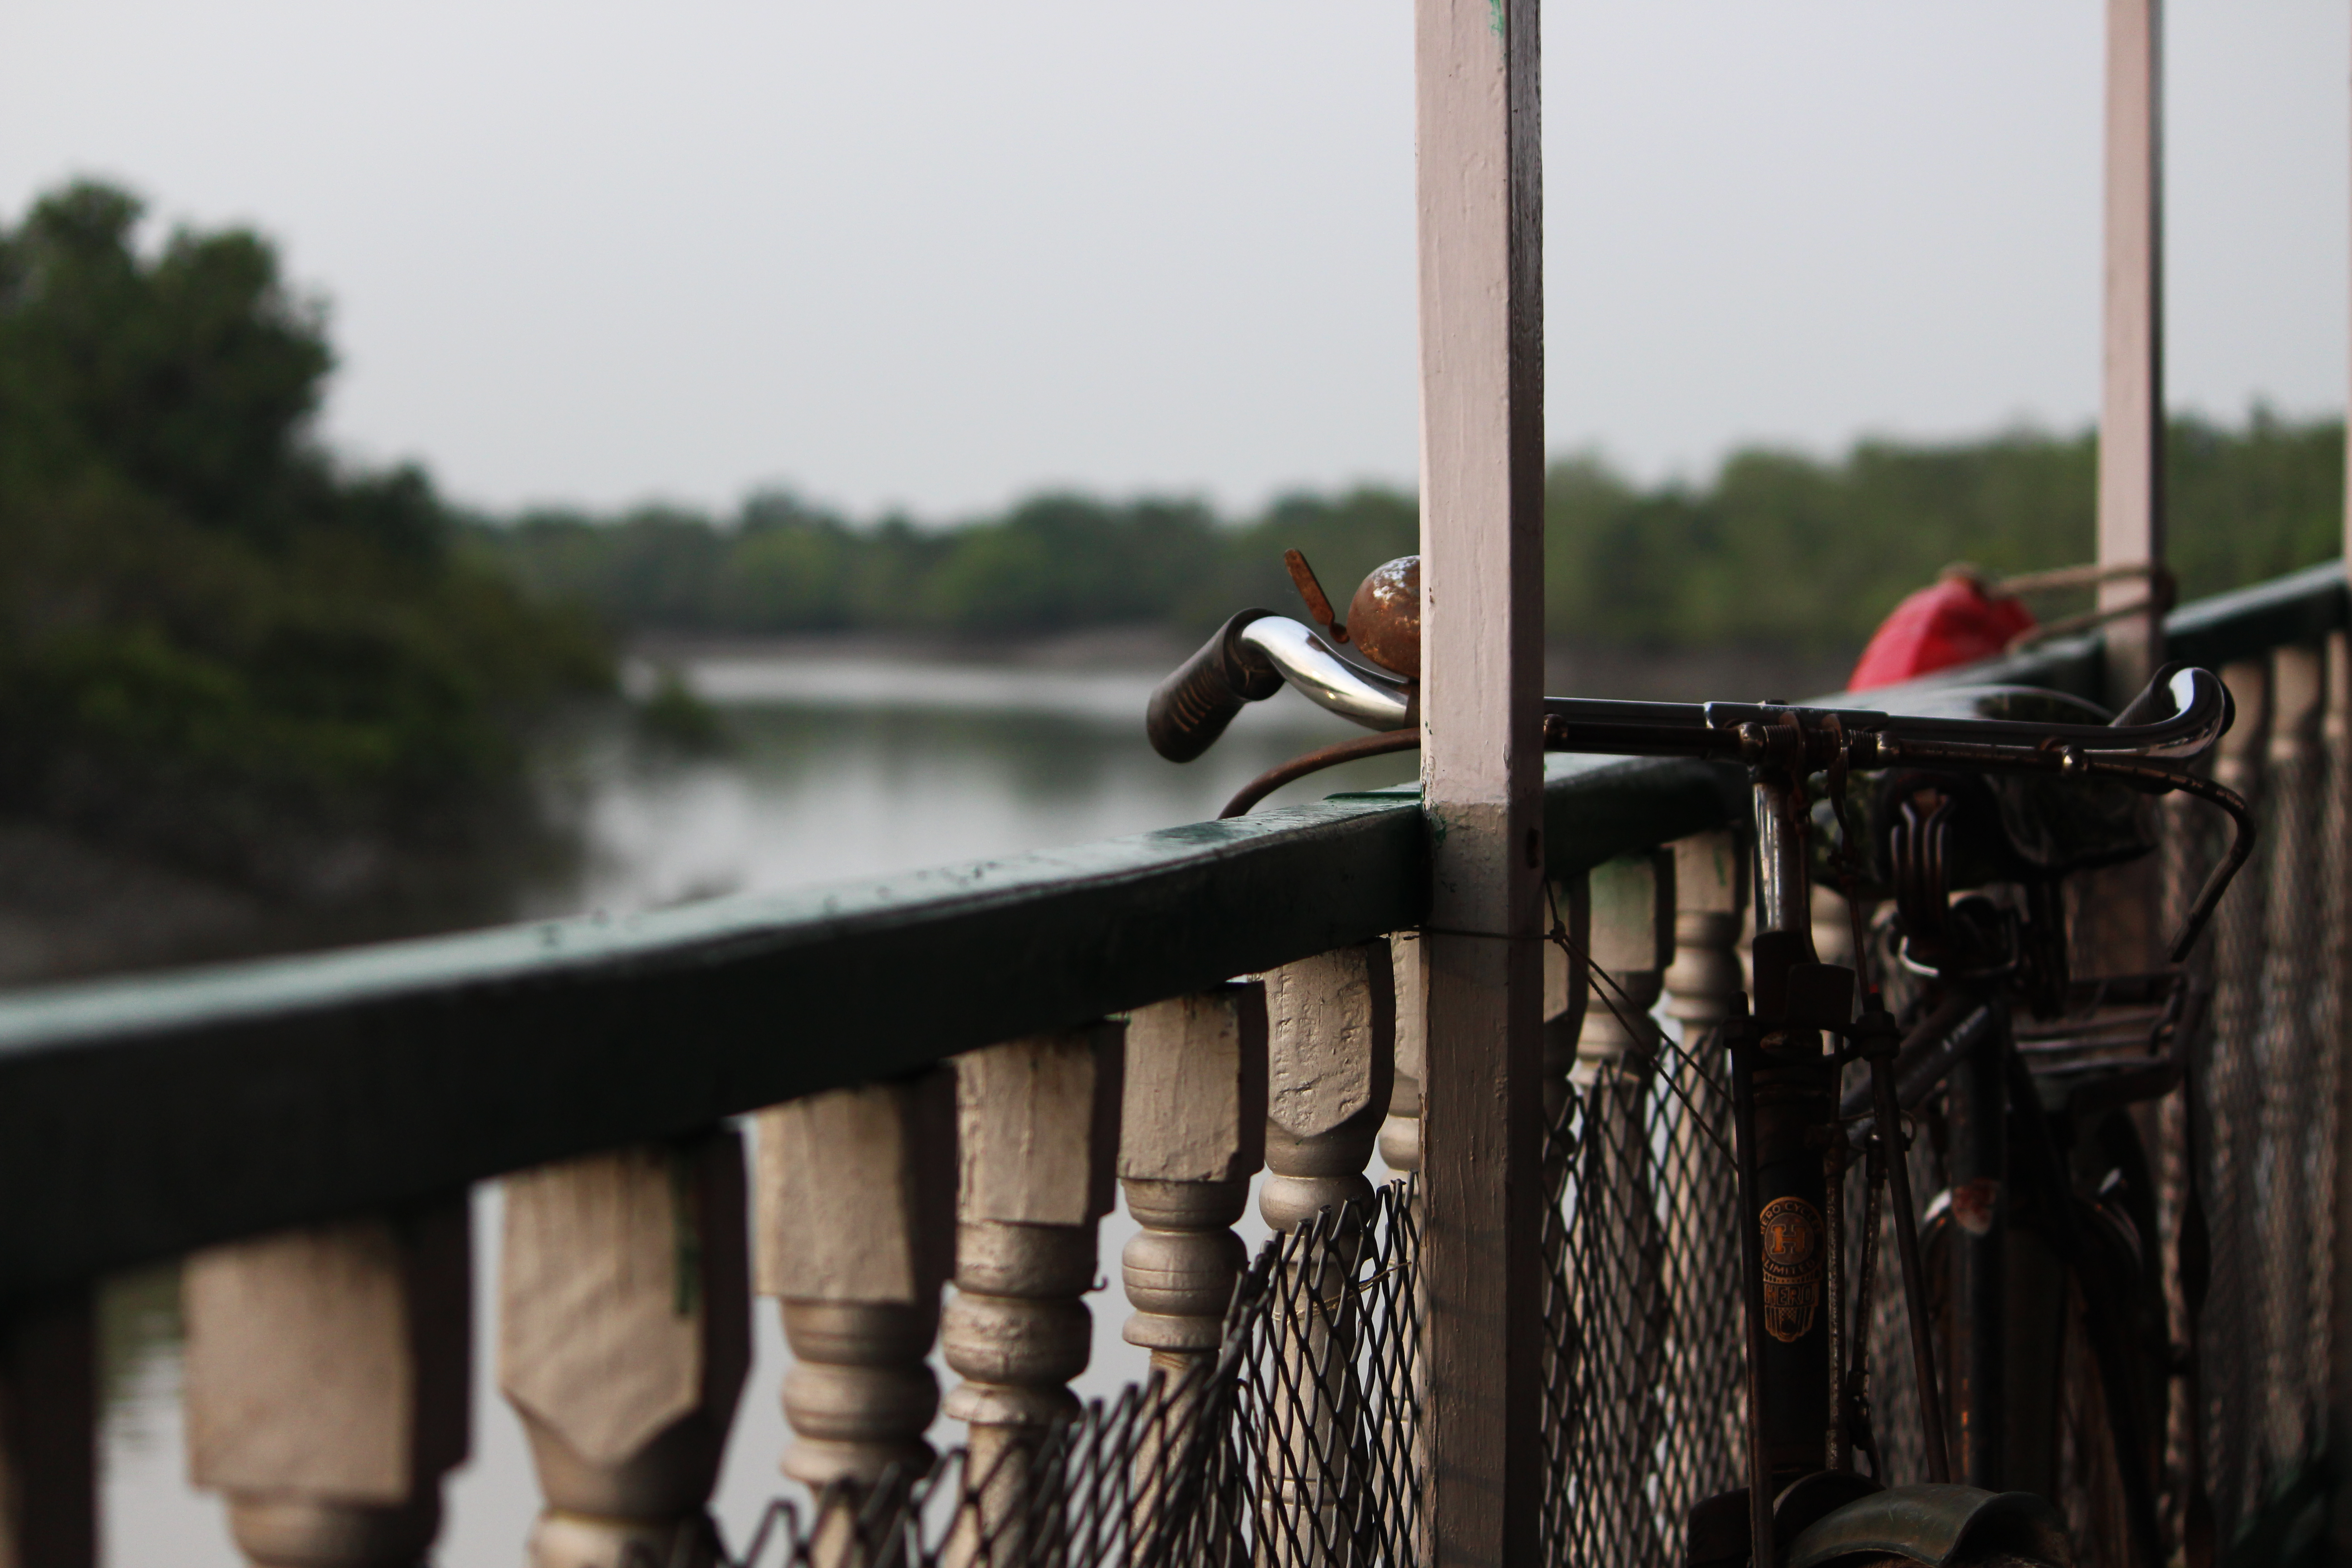 A bicycle leaning against a balustrade over a lake